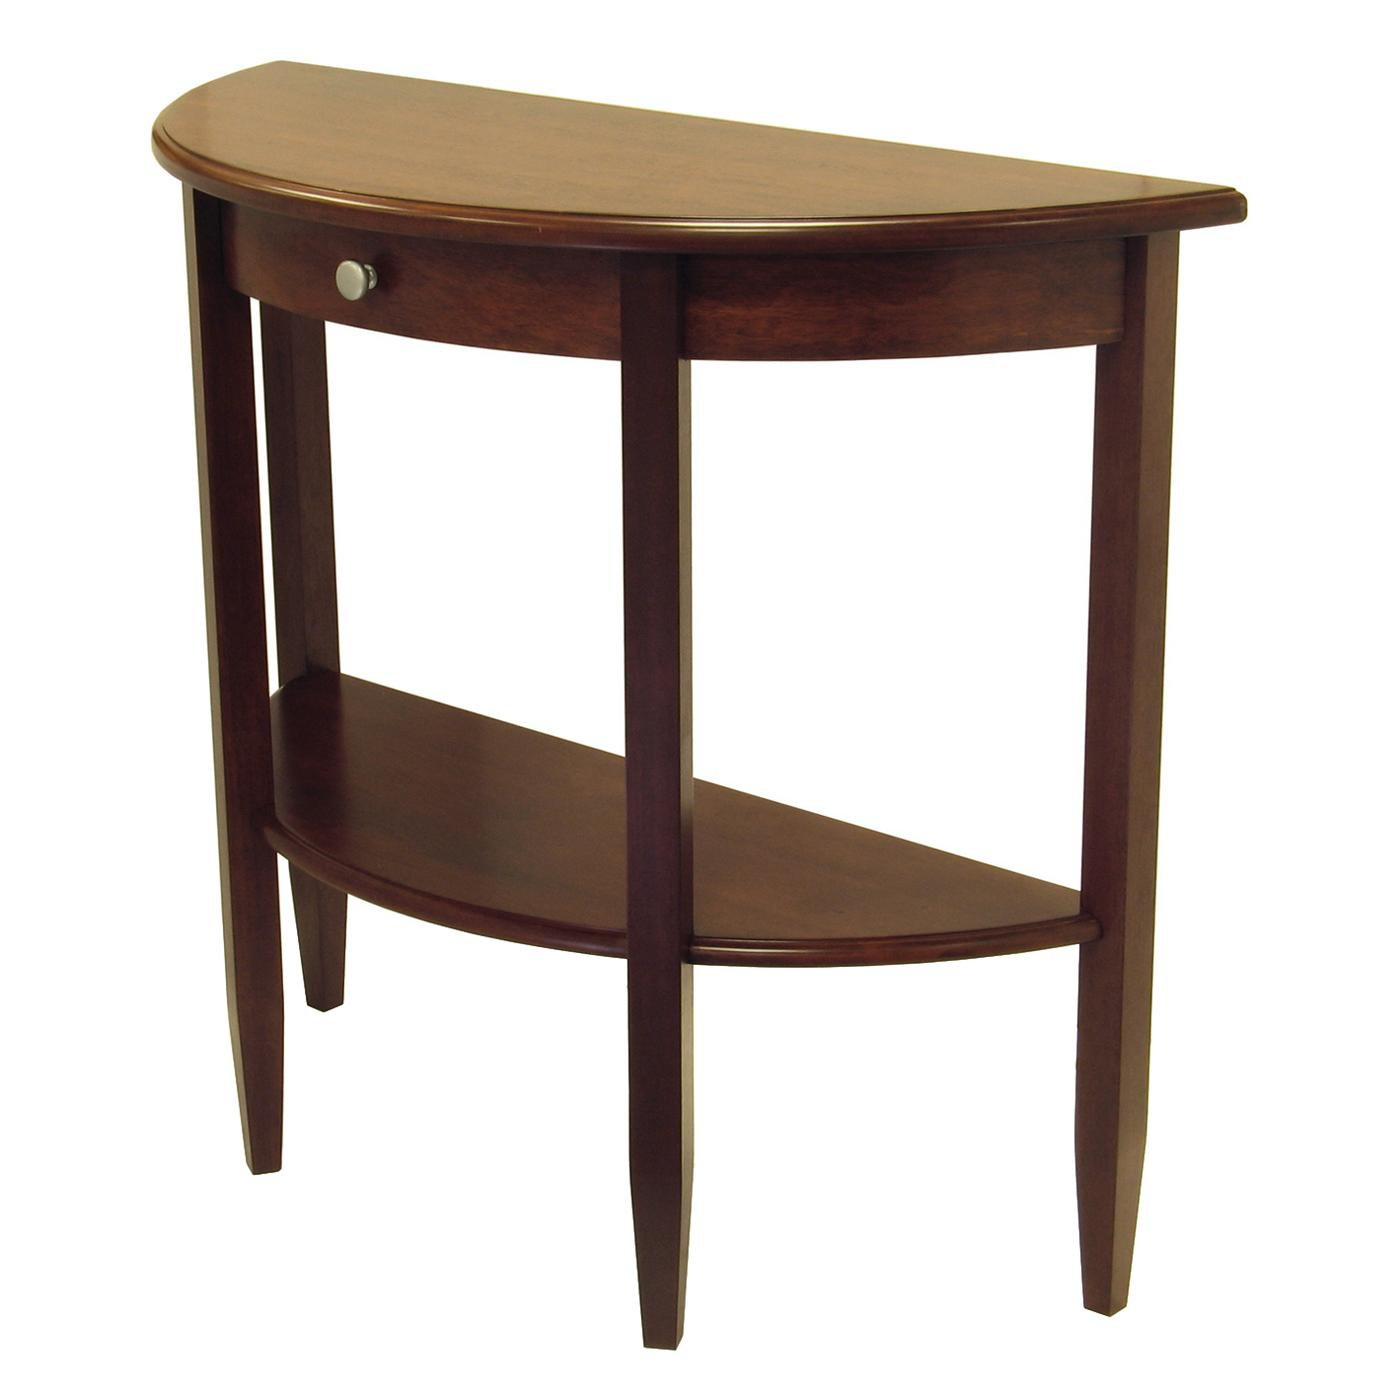 Half moon entry table homesfeed - Half table entryway ...